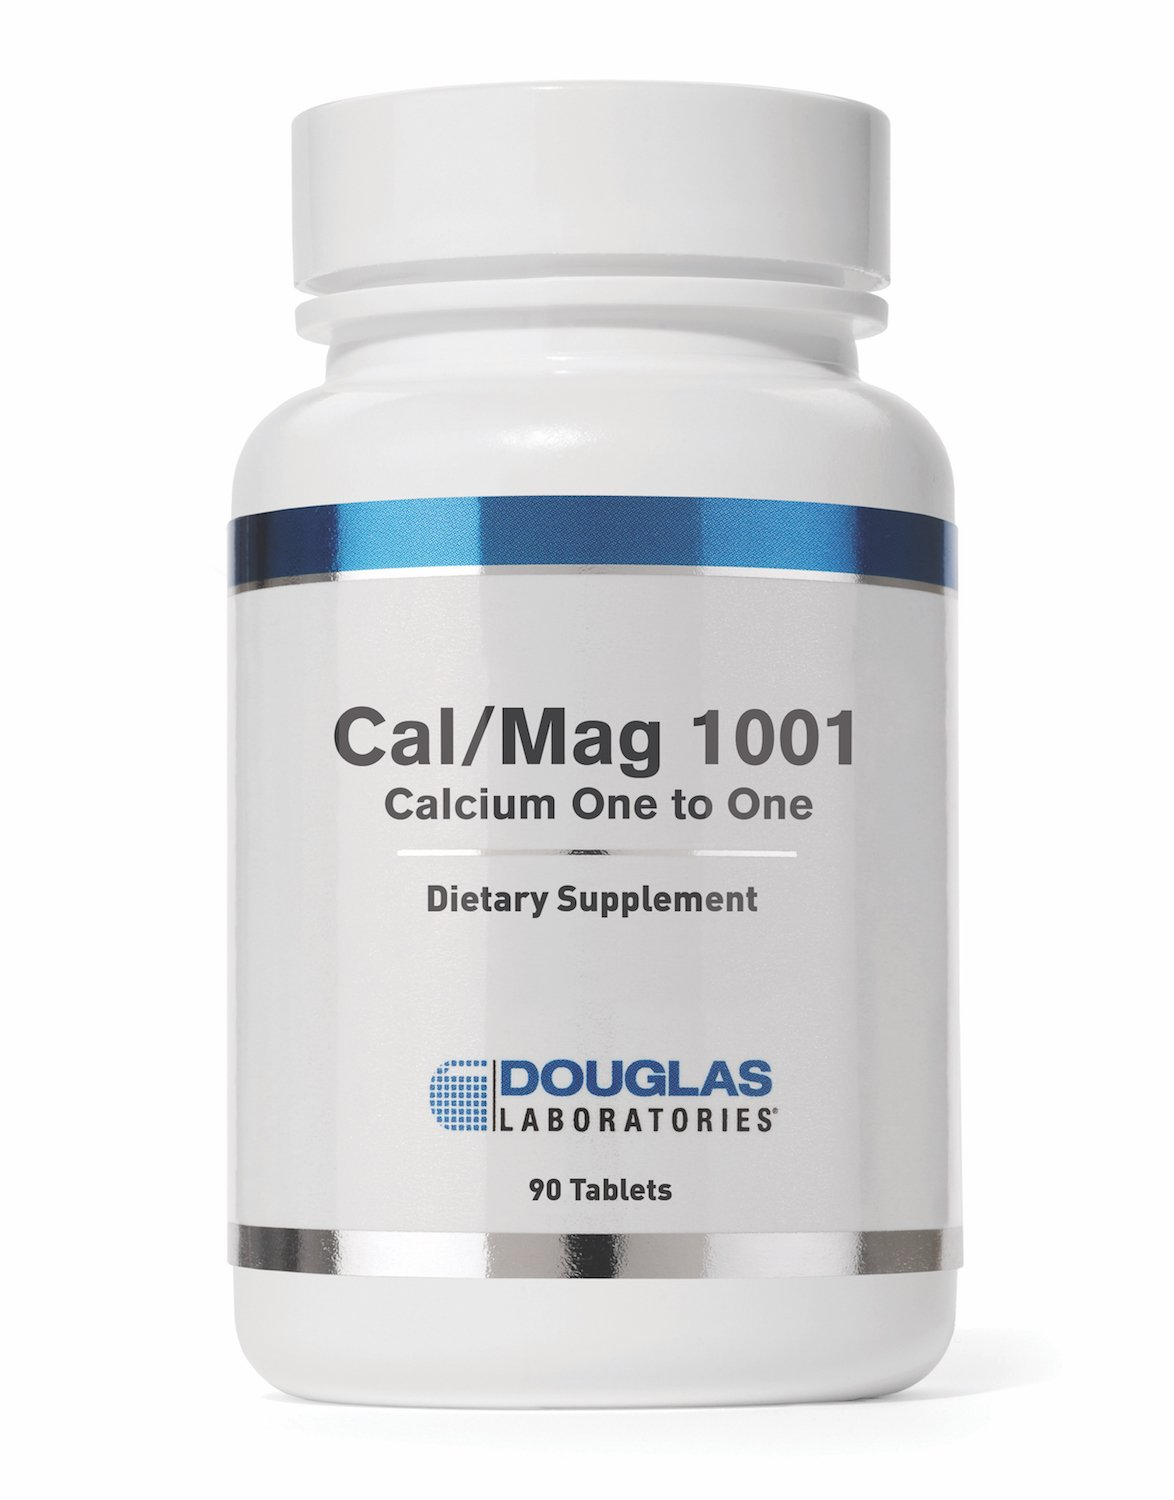 Douglas Laboratories - Cal/Mag 1001 (Calcium One to One) - with Magnesium and Other Nutrients to Support Healthy Bone Structure* - 90 Tablets